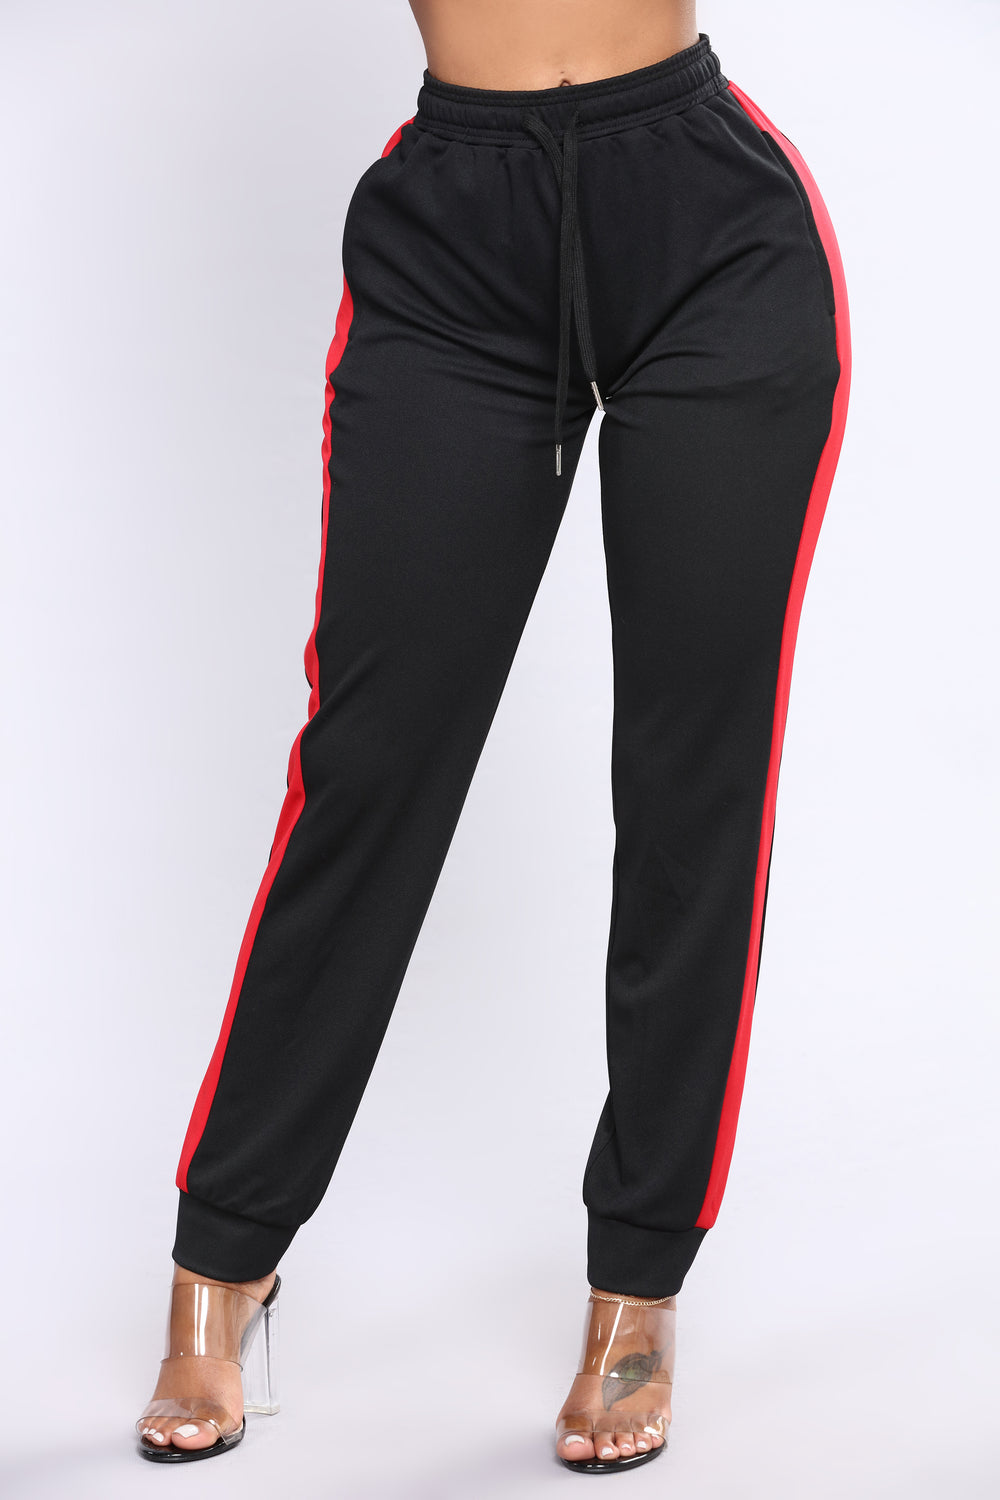 Ridin Shotgun Stripe Joggers - Black/Red